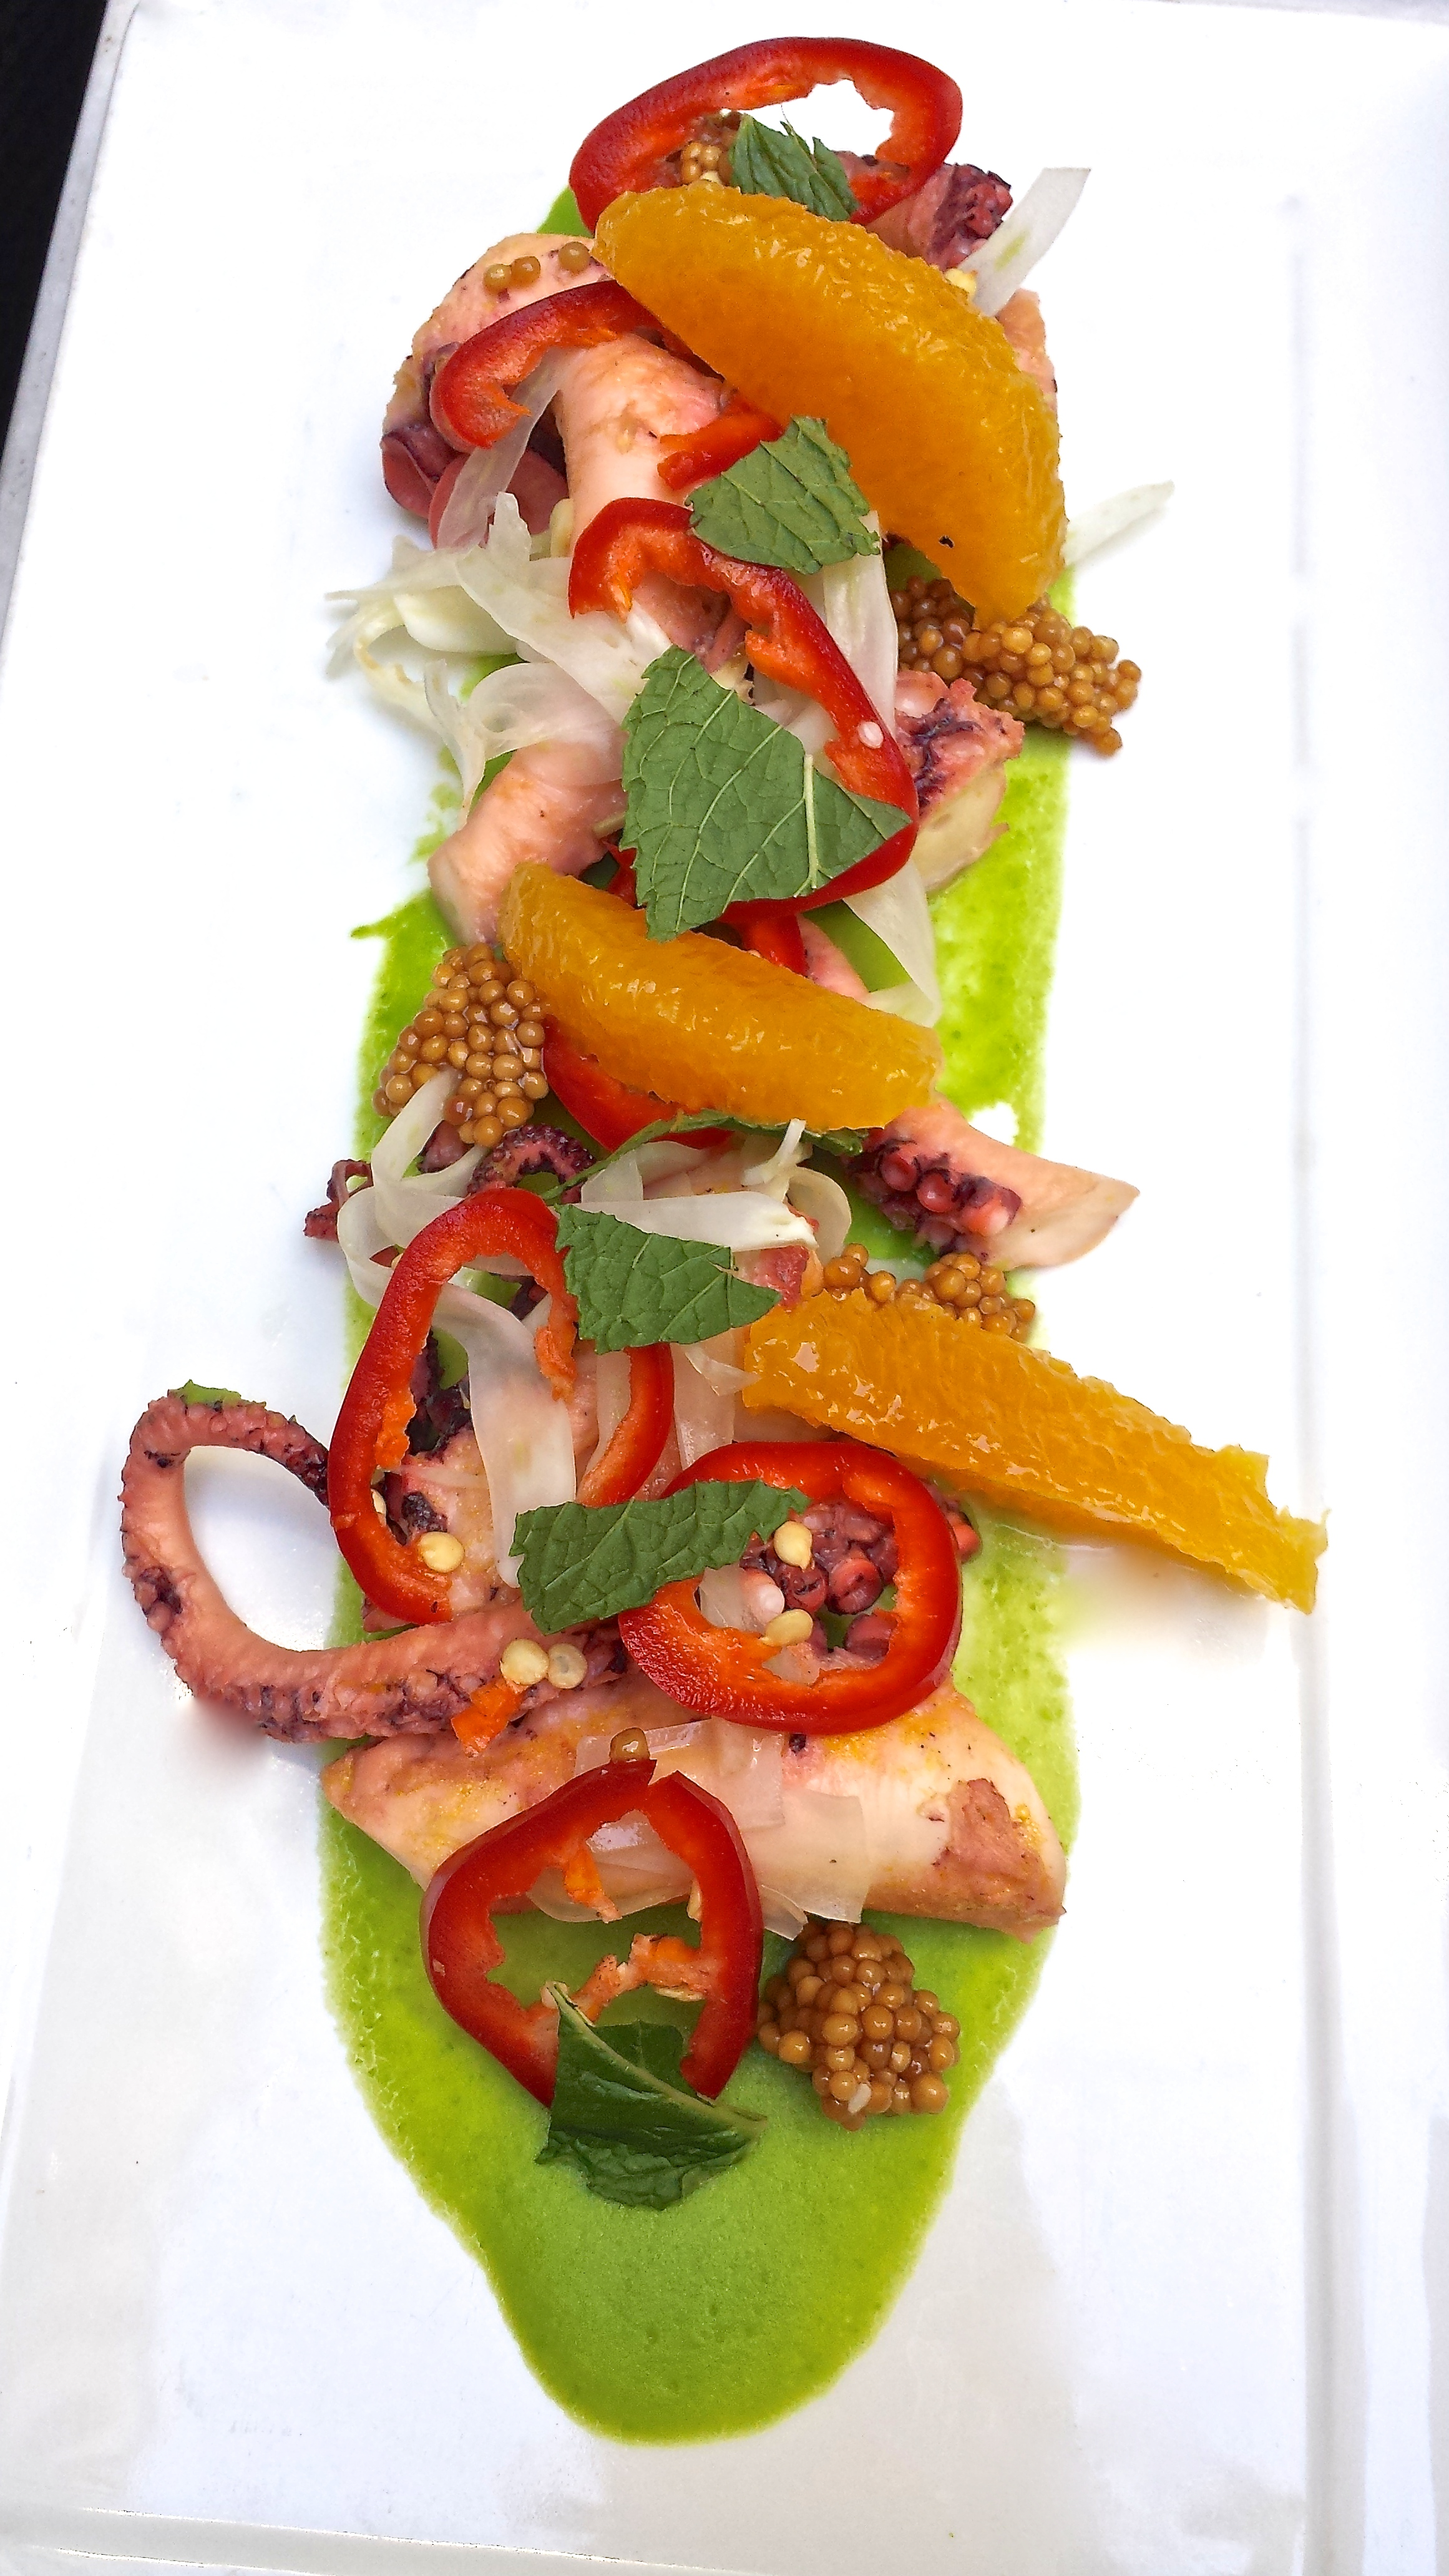 Wood and Vine's grilled octopus